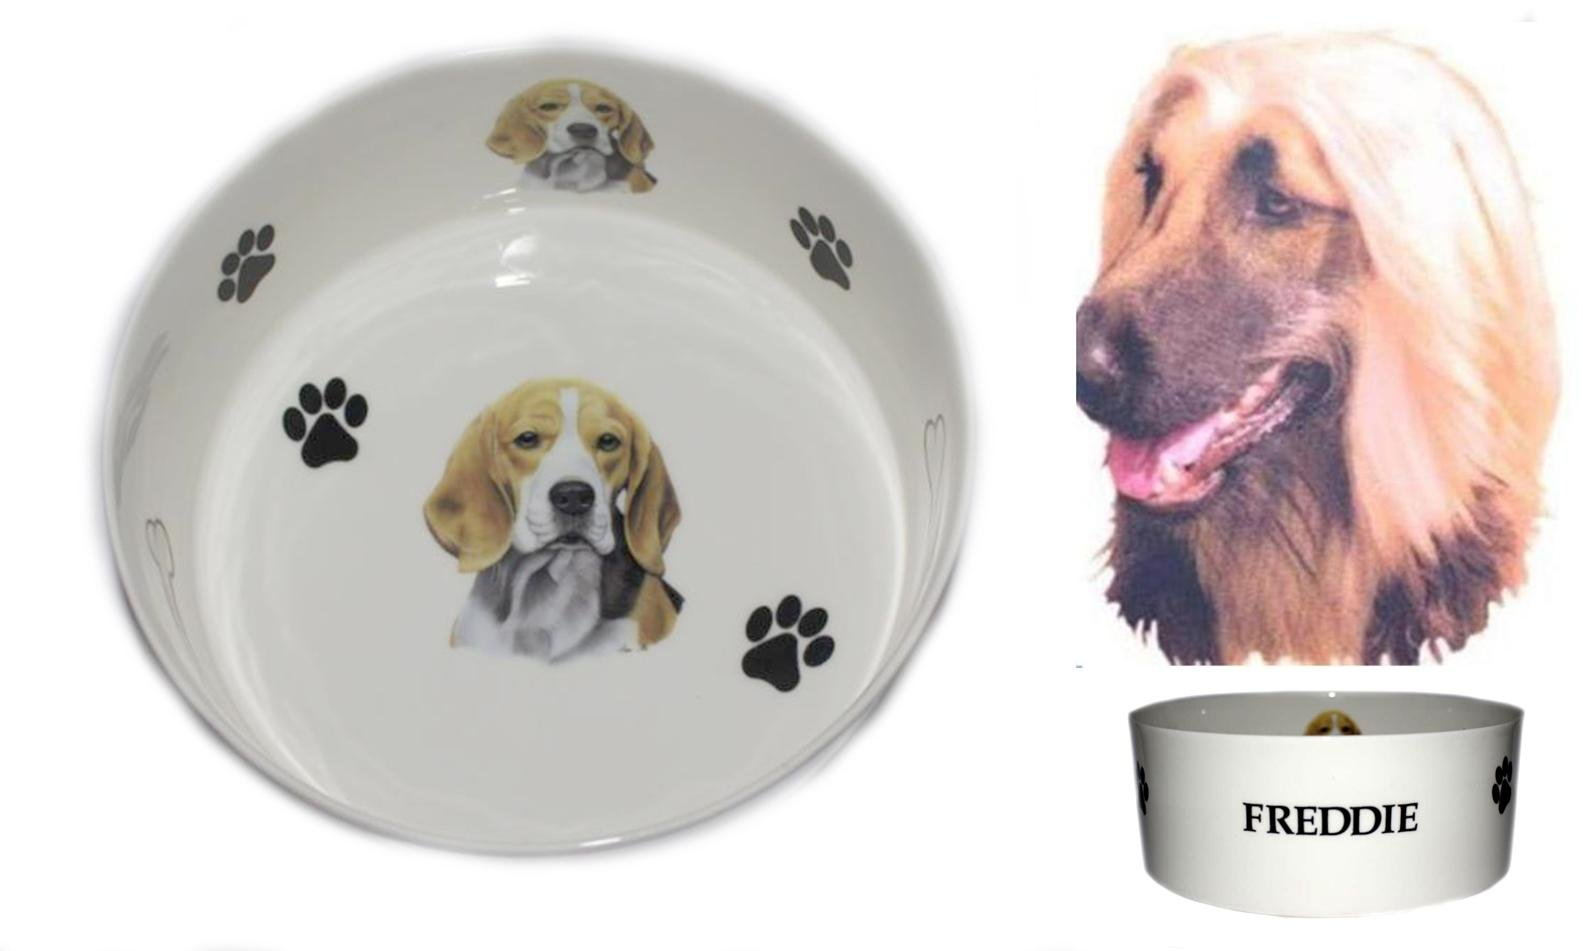 (R) Bone China Personalised AFGHAN HOUND dog food/water pet bowl decorated with PAWPRINTS AND BONES, Personalised with name of your choice- Many dog breeds available. Fun, colourful, new pet bowls. AFGHAN HOUND GIFTS